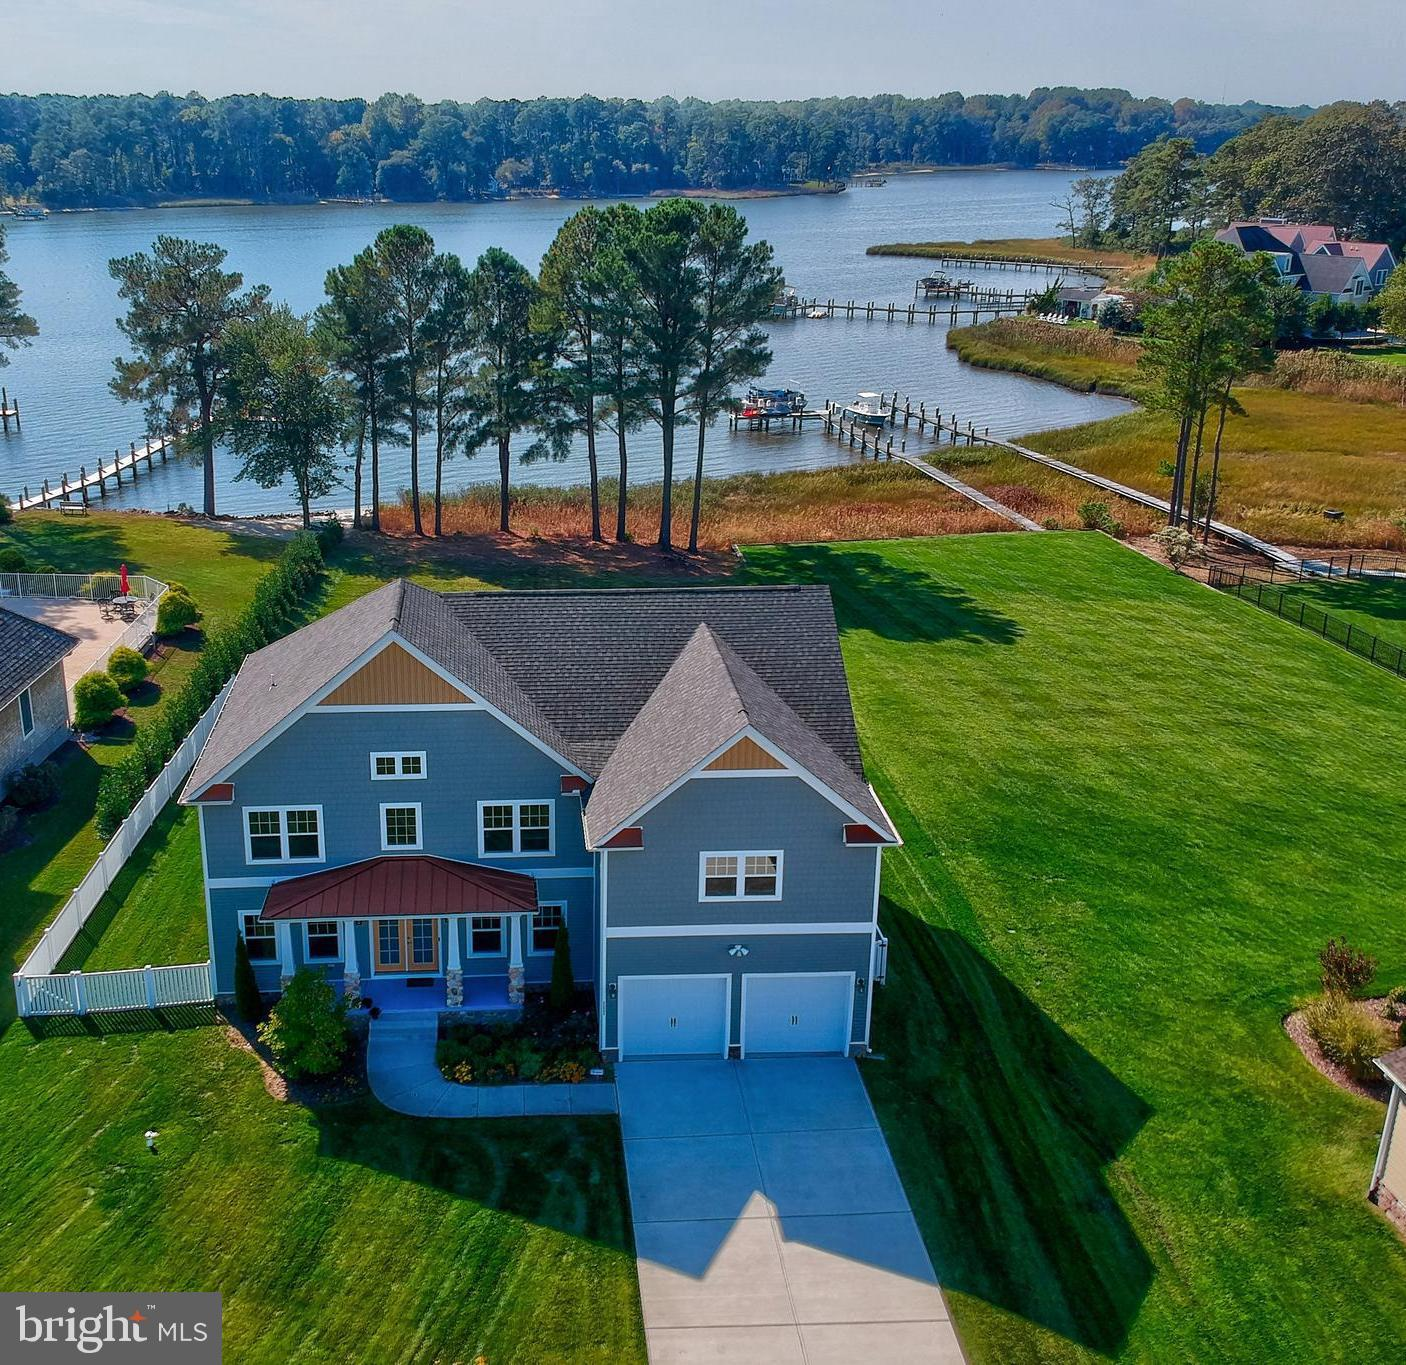 COASTAL. LUXURY. CUSTOM. This magnificent waterfront 5 bedroom, 3.5 bath home is ready for you to live, relax, and entertain. The fantastic open floor concept features beautiful flooring, large living areas, recessed lighting, a fireplace with gorgeous marble surround, a separate large dining area, and a wonderful enclosed back deck that looks out over the marvelous views of the bay. The gourmet kitchen features Bosch stainless steel appliances, granite countertops, beautiful ceramic backsplash, a wall oven with warming tray, induction cooktop, and contemporary cabinets. The large custom island has smart touch technology and the breakfast dining area leads to a comfortable bright and sunny family room with views of the water. You can reach the second level by elevator or stairs where you'll find a spacious master suite with large walk-in closets, a fabulous master bath with an extra large and fully tiled and stone shower, soaking tub, dual vanities, and vanity area. The other 4 bedrooms are bright, sunny, and airy, one of which was fully soundproofed and used as a music room. The large laundry features a wash sink, closet, washer and dryer. The expansive and partially fenced in backyard is a dream with unparalleled water views, beautiful landscaping, lots of space for entertaining, and the option to build a dock for your boat. The amenities at the Villages at Herring Creek include a clubhouse with meeting rooms, fully-equipped fitness room, tennis court, and an outdoor, 25-meter pool, all with surprisingly low HOA fees. This one-of-a-kind home with picturesque views is just a short drive to the beaches, shopping, restaurants, entertainment, and everything coastal Delaware has to offer. Make plans to visit today!